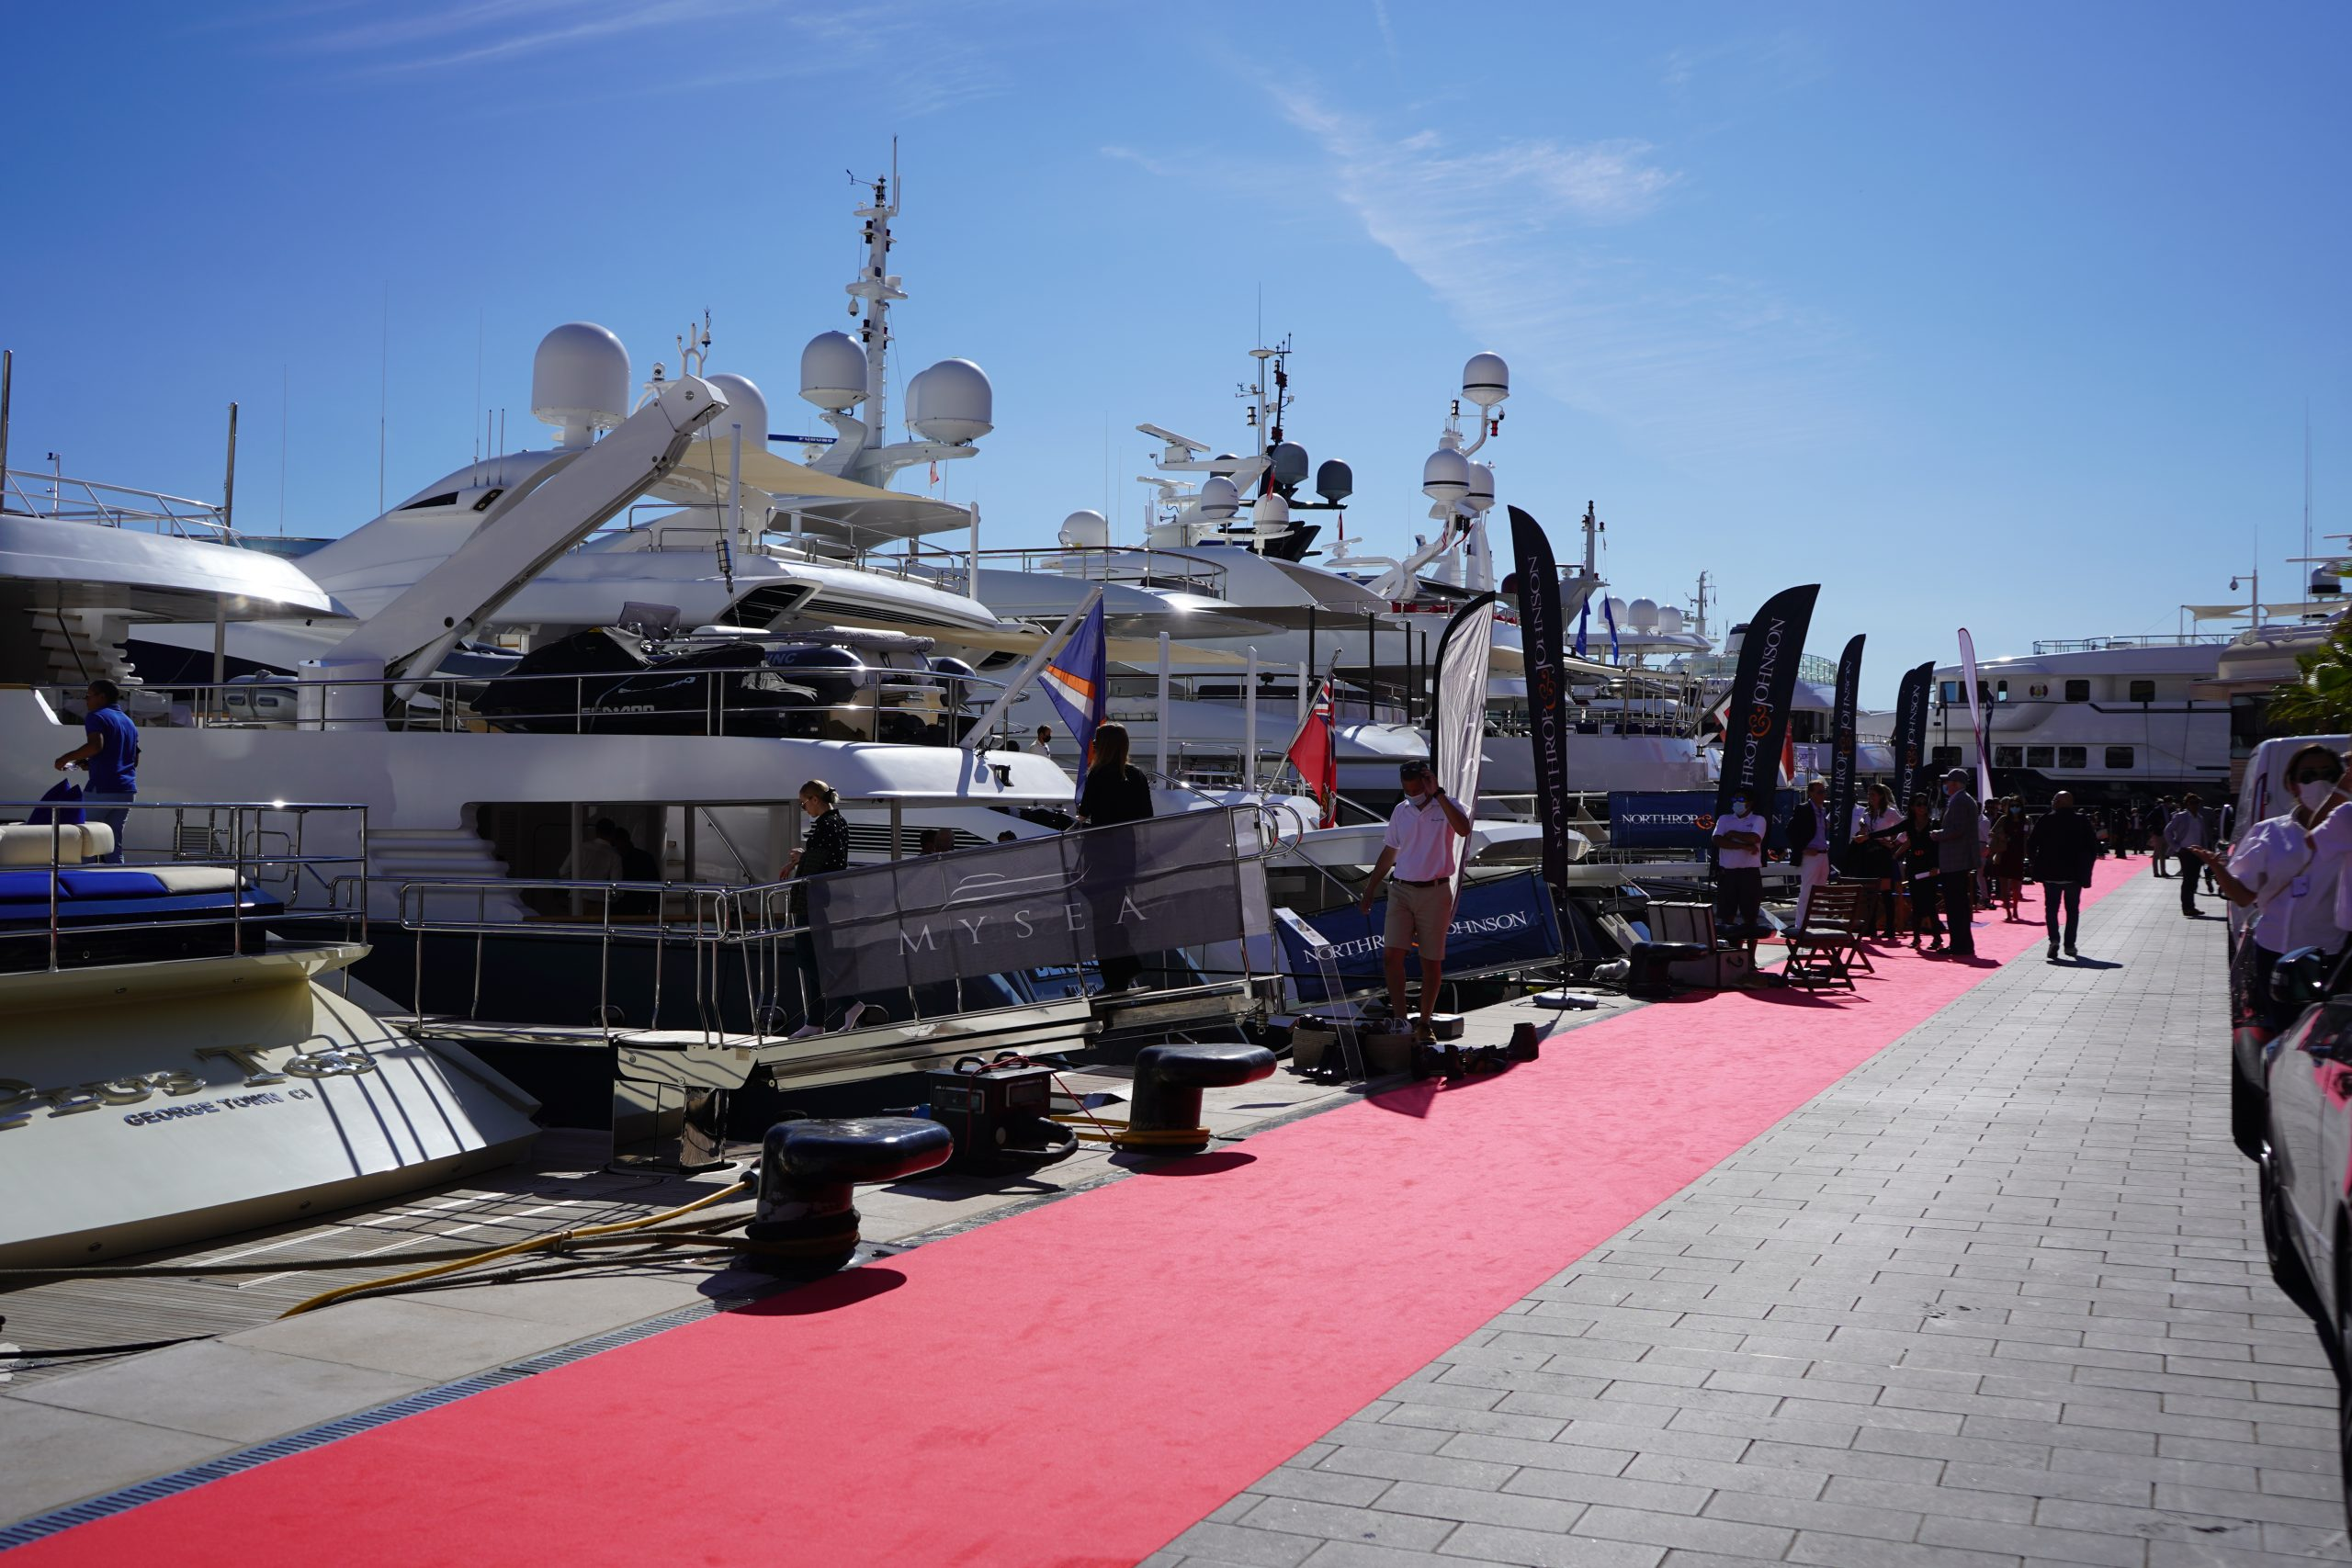 Cluster Yachting Monaco - Open Day Dock with red carpet, Northrop & Johnson flags and yachts